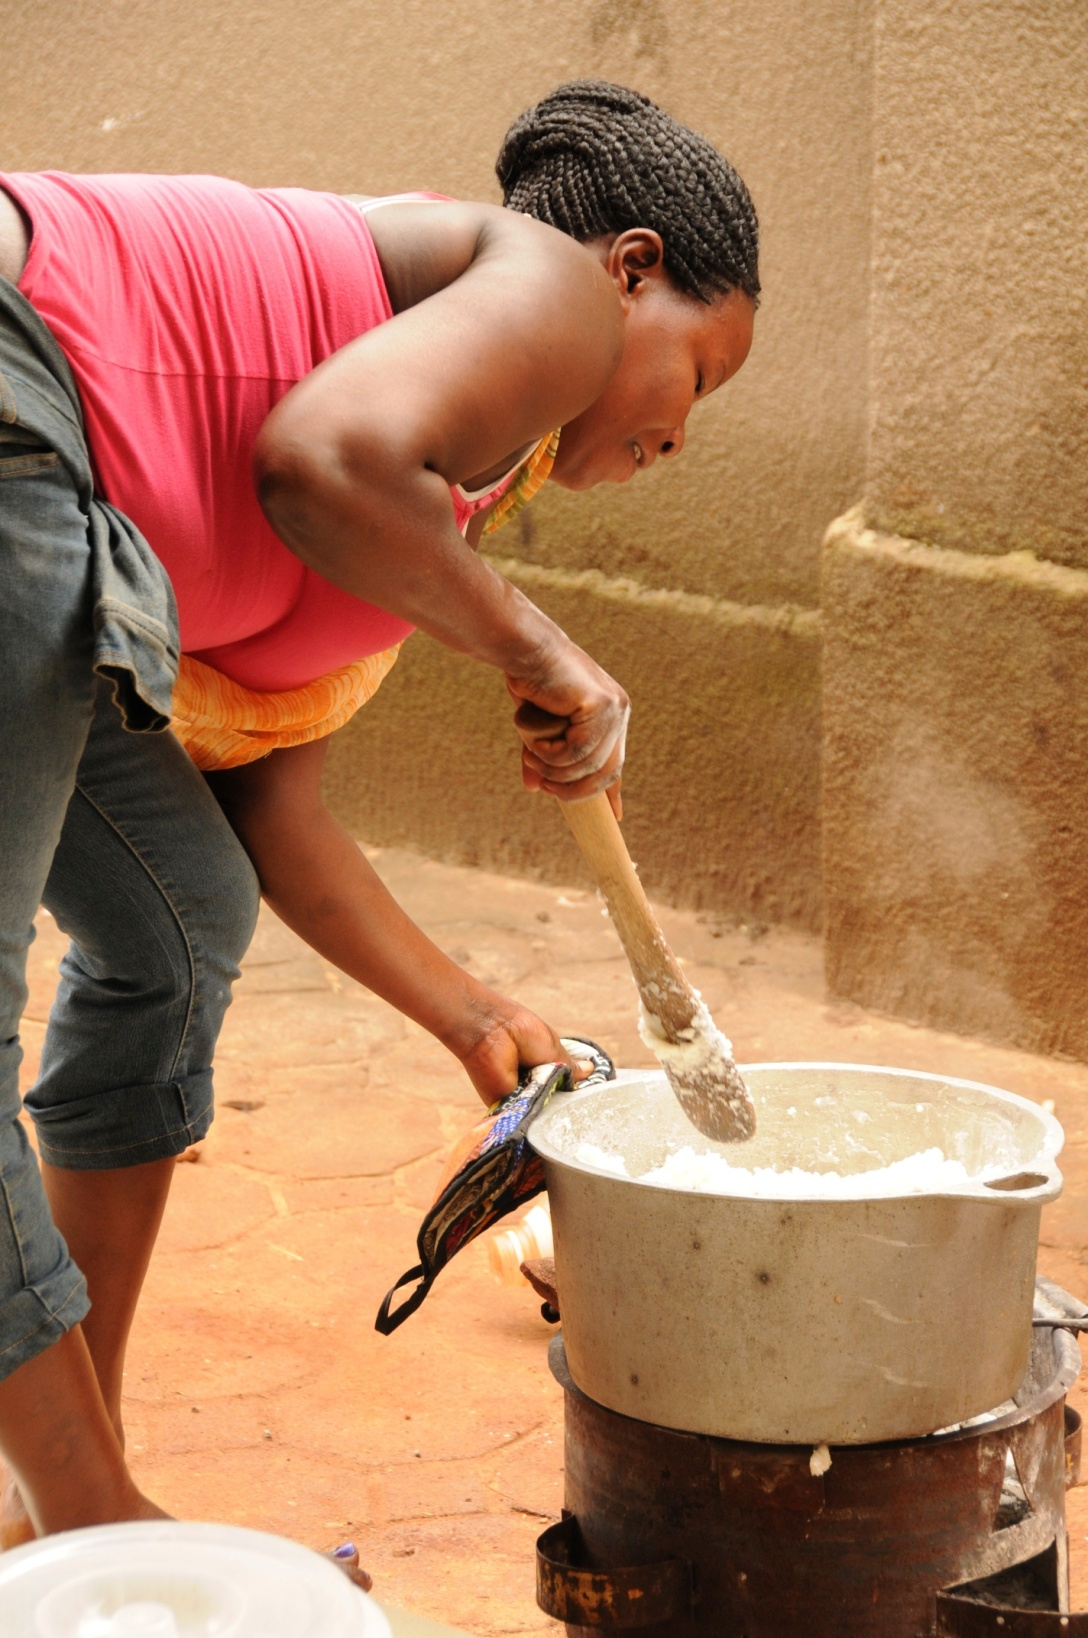 Judith is stirring the posho. It is so hard to do she works harder than the men building a wall.